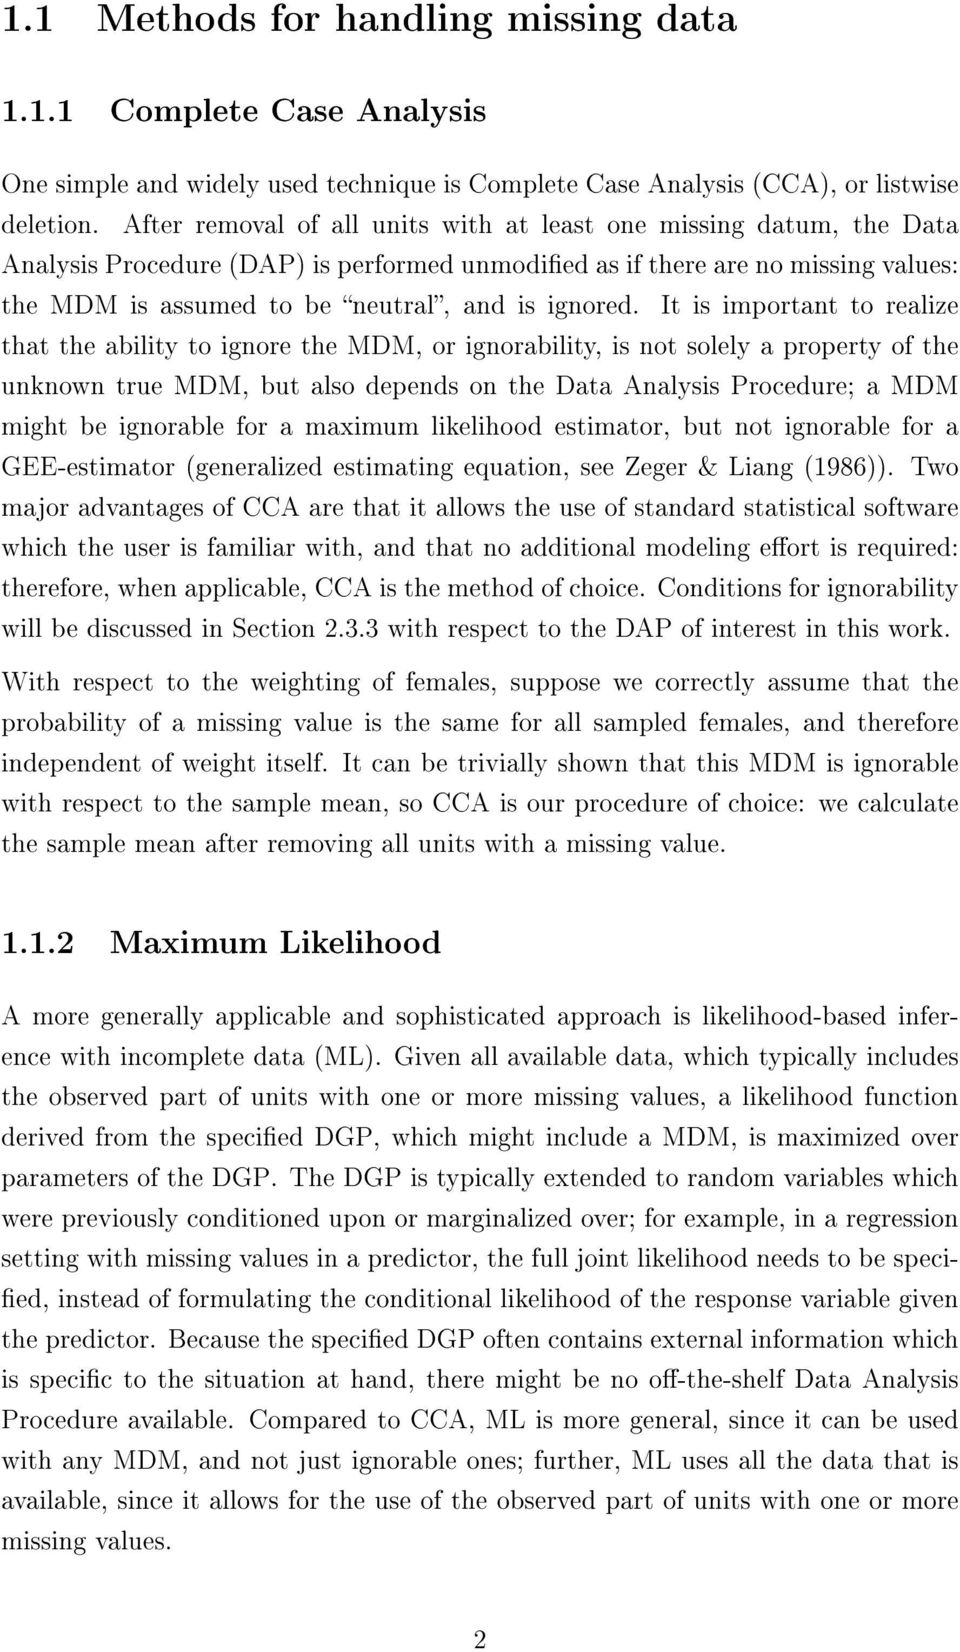 It is important to realize that the ability to ignore the MDM, or ignorability, is not solely a property of the unknown true MDM, but also depends on the Data Analysis Procedure; a MDM might be